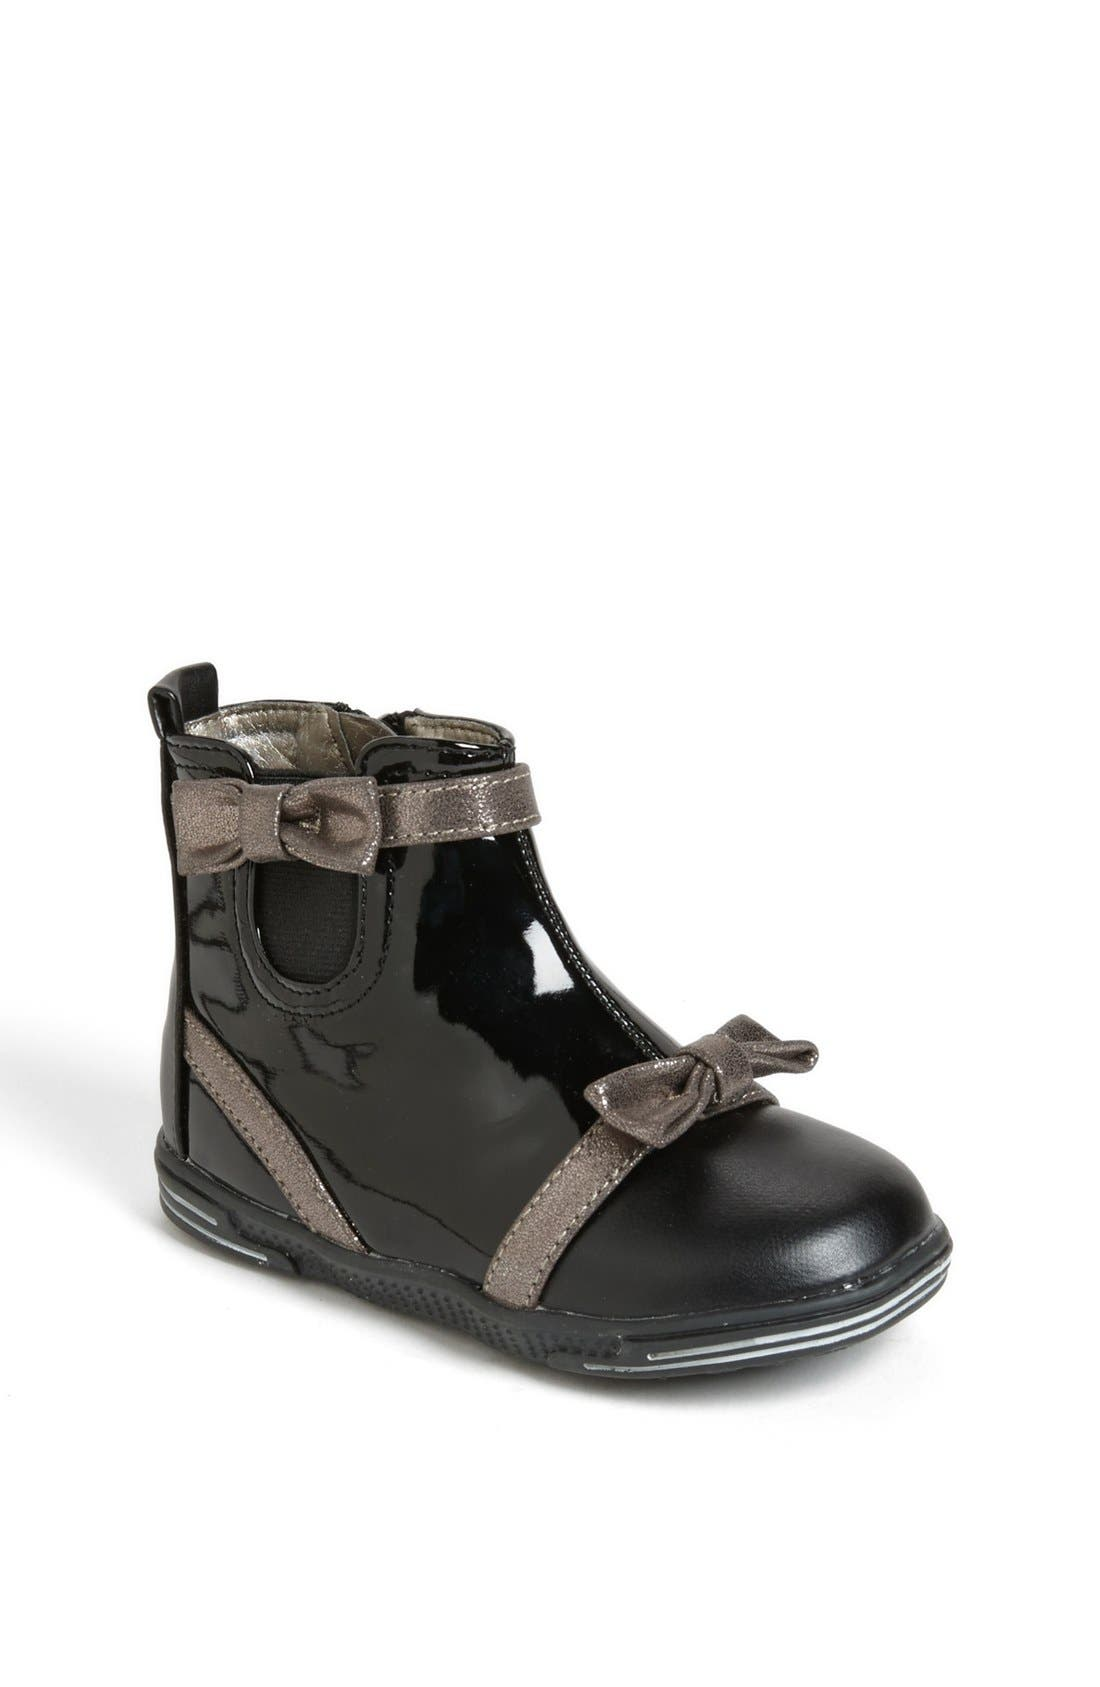 Main Image - kensie girl Bow Boot (Walker & Toddler)